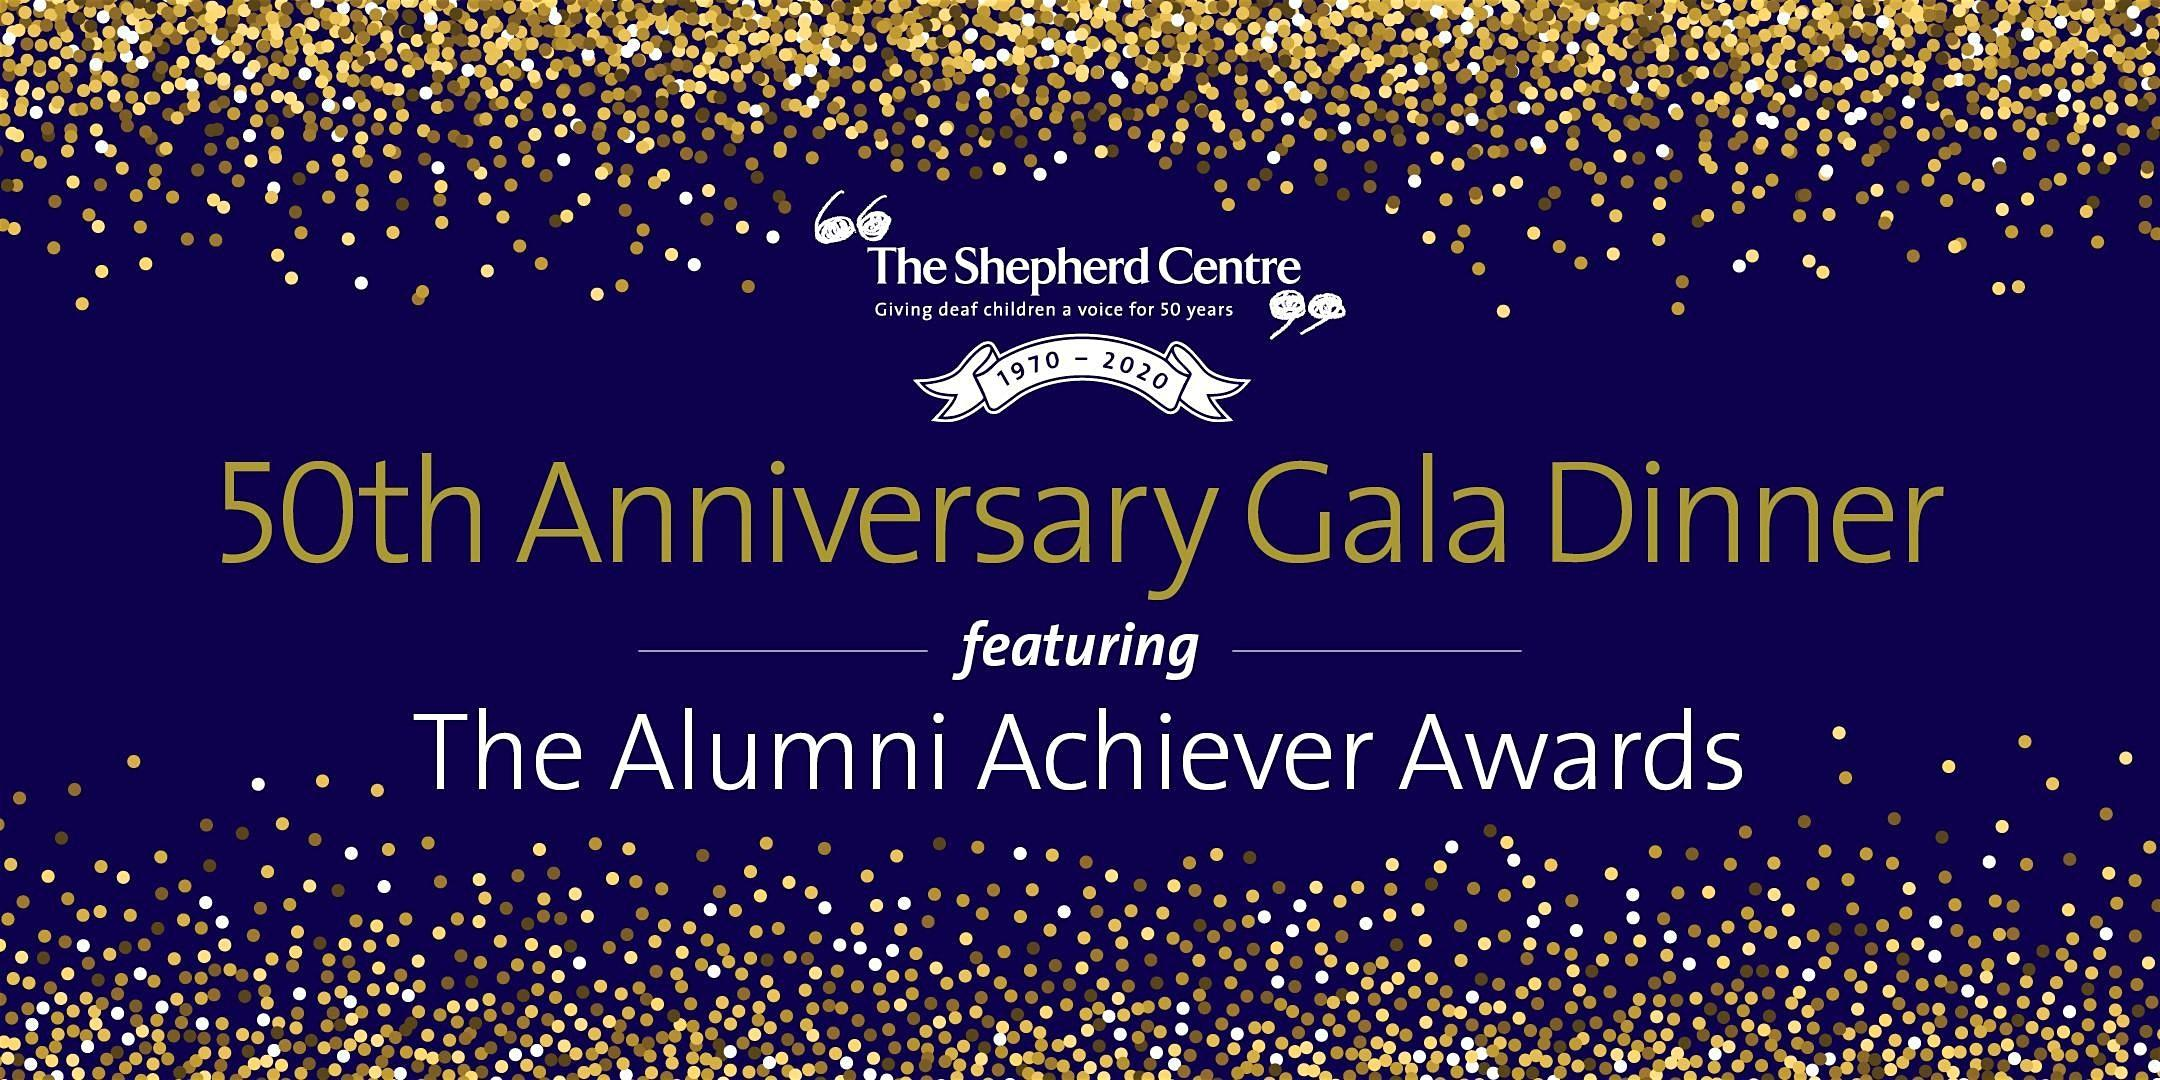 The Shepherd Centre 50th Anniversary Gala Dinner